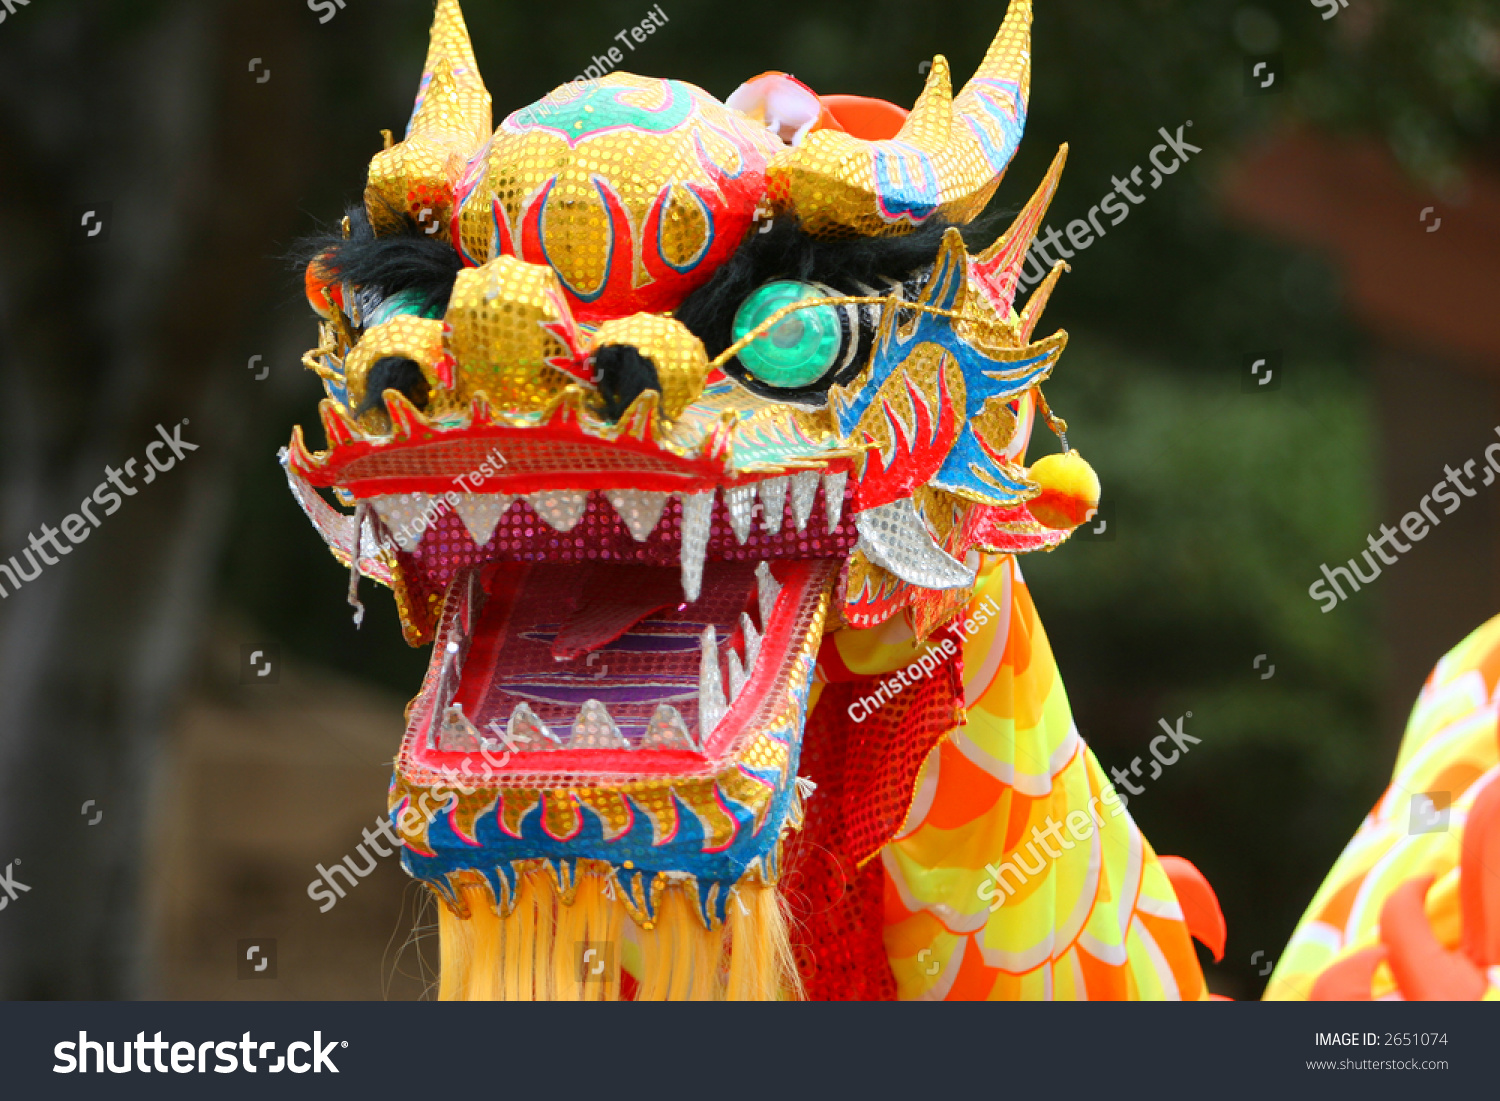 How to write dragon dance in chinese